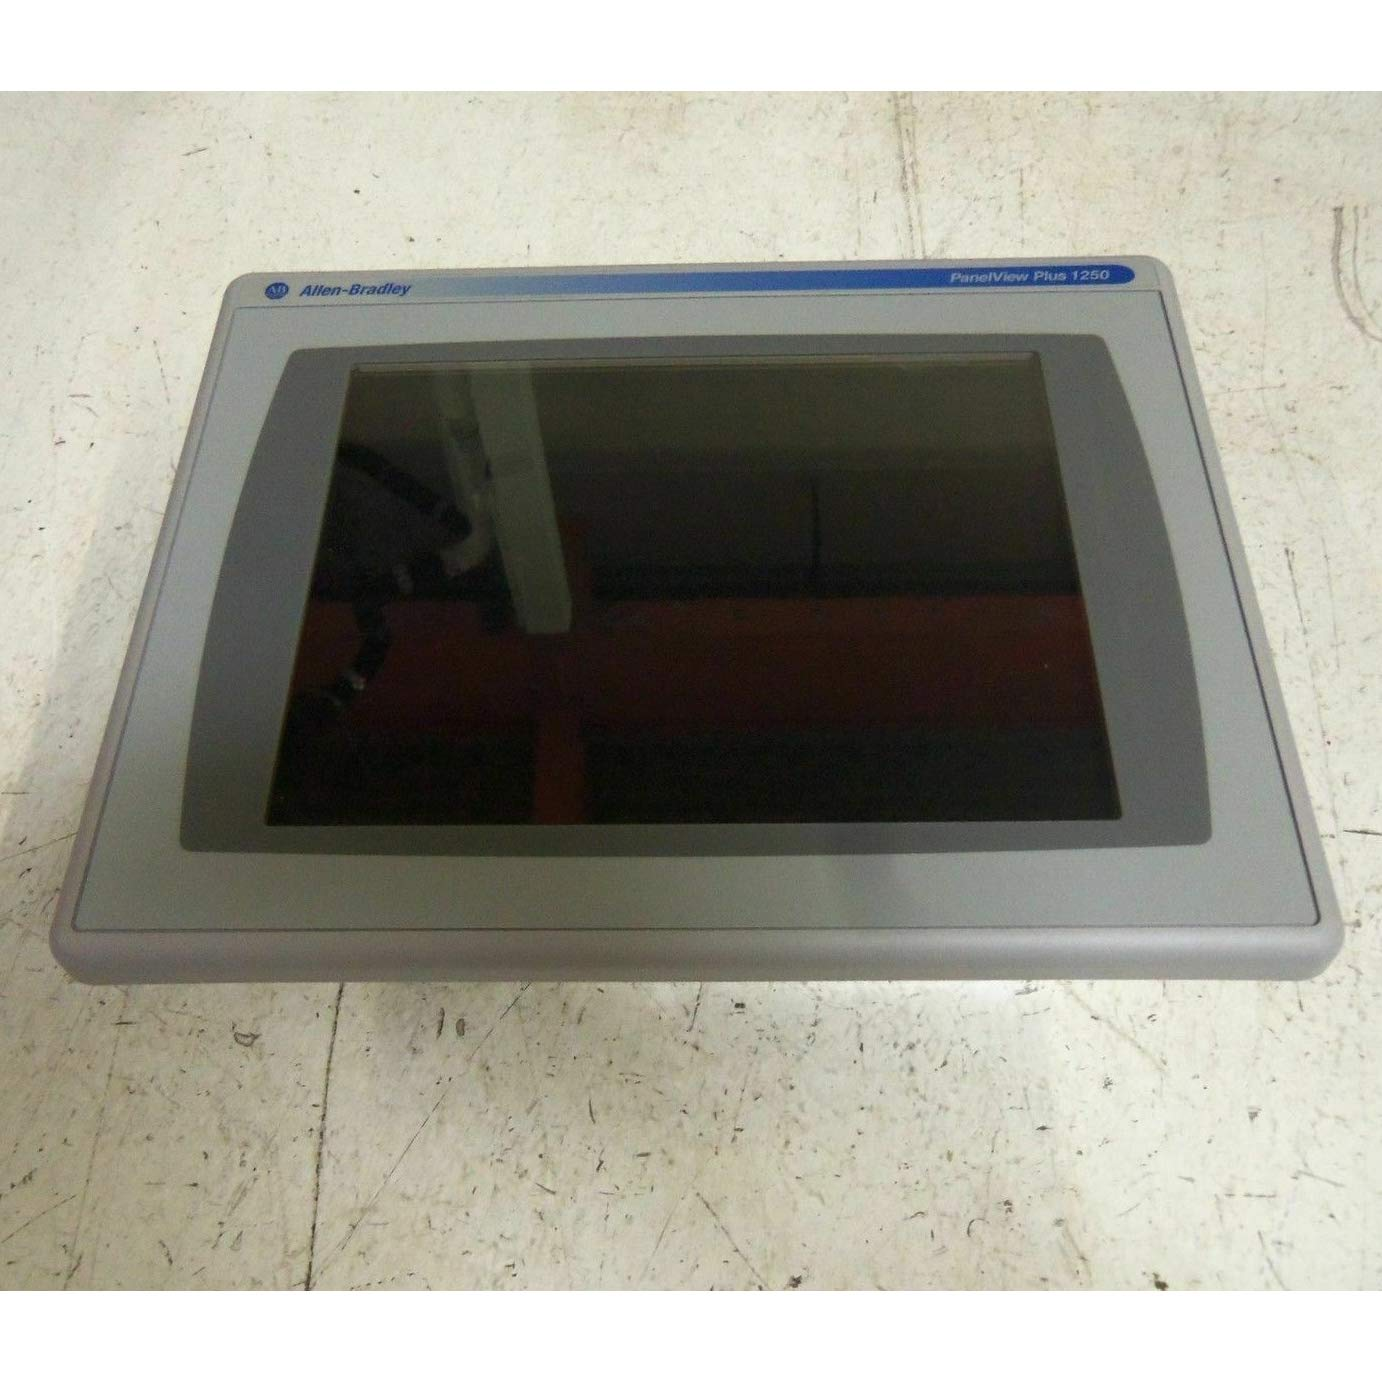 2711P-T12C6A1 2711P-T12C6A1 2711PT12C6A1 PANELVIEW Plus 1250 Color Terminal 12.1 INCH Touch Screen DH+ DH-485 Rio and Standard Communication